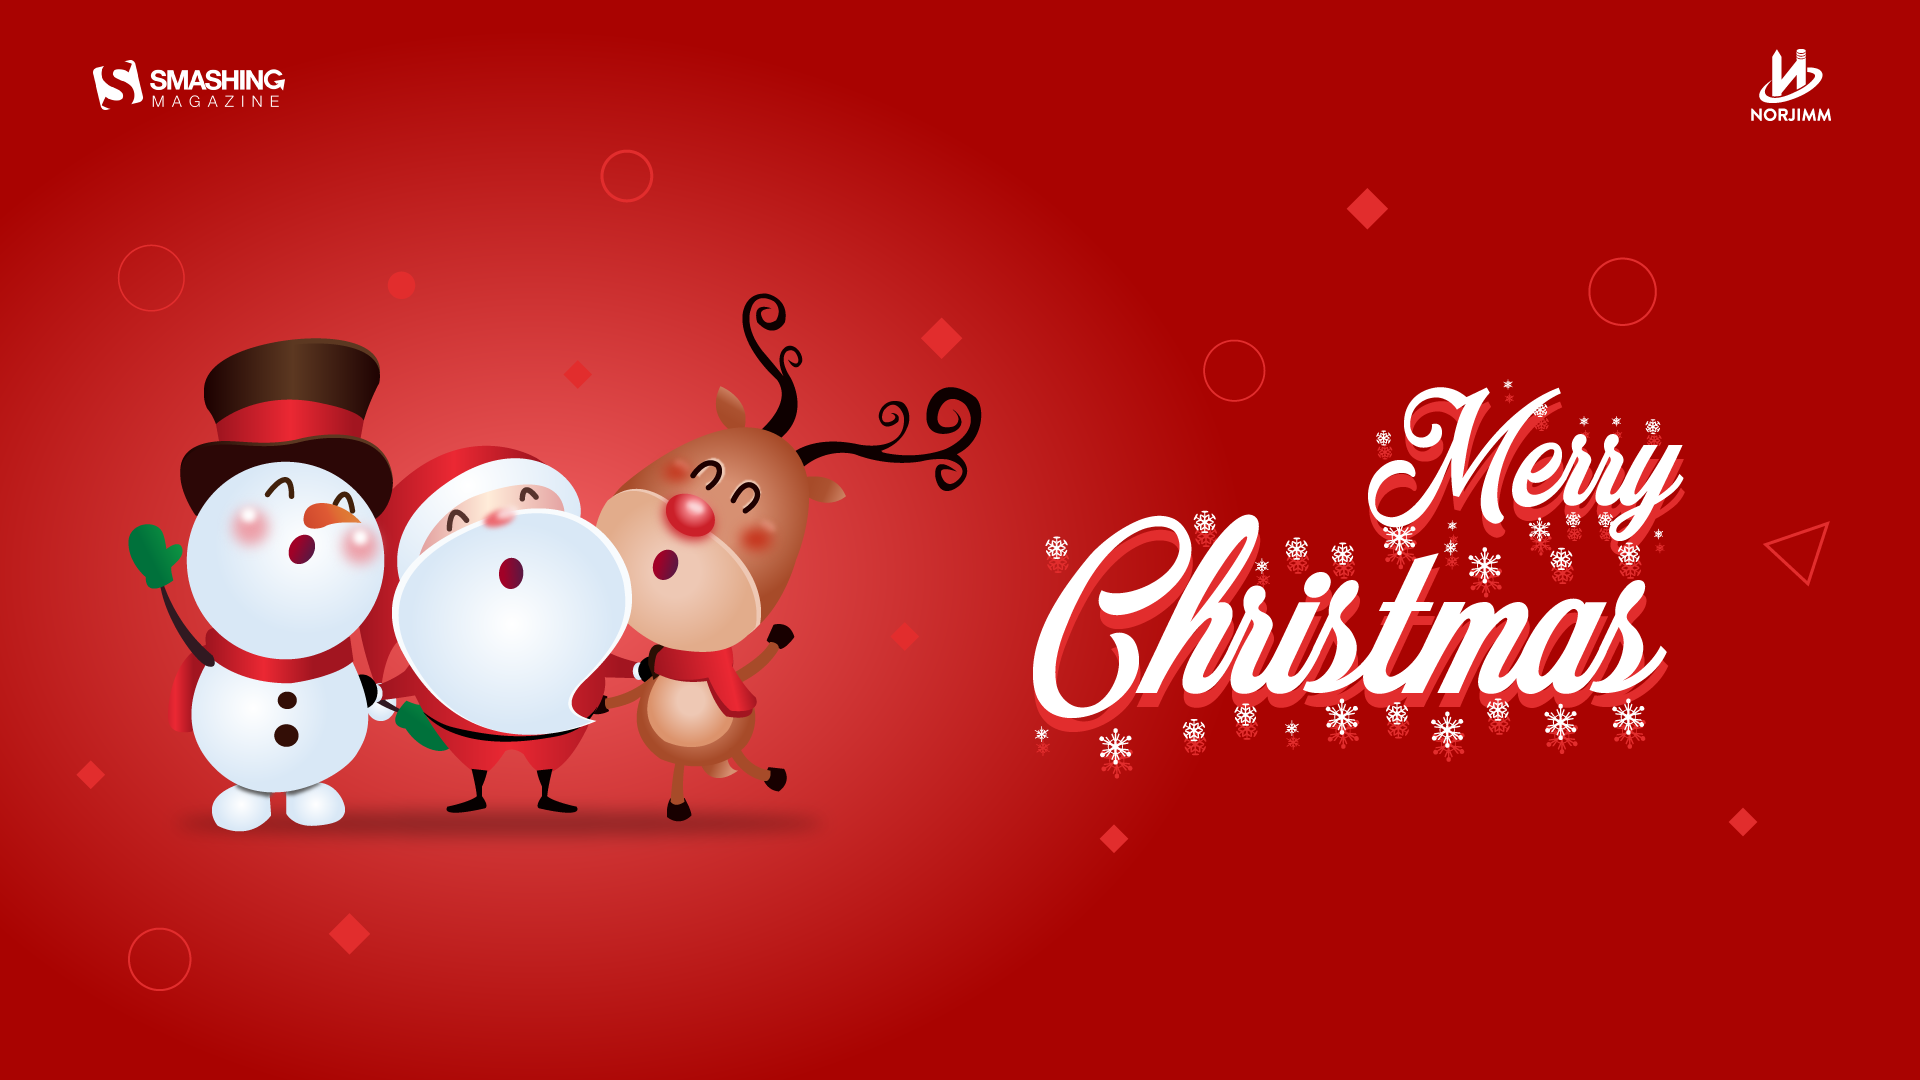 beautiful merry Christmas December hd wallpaper desktop